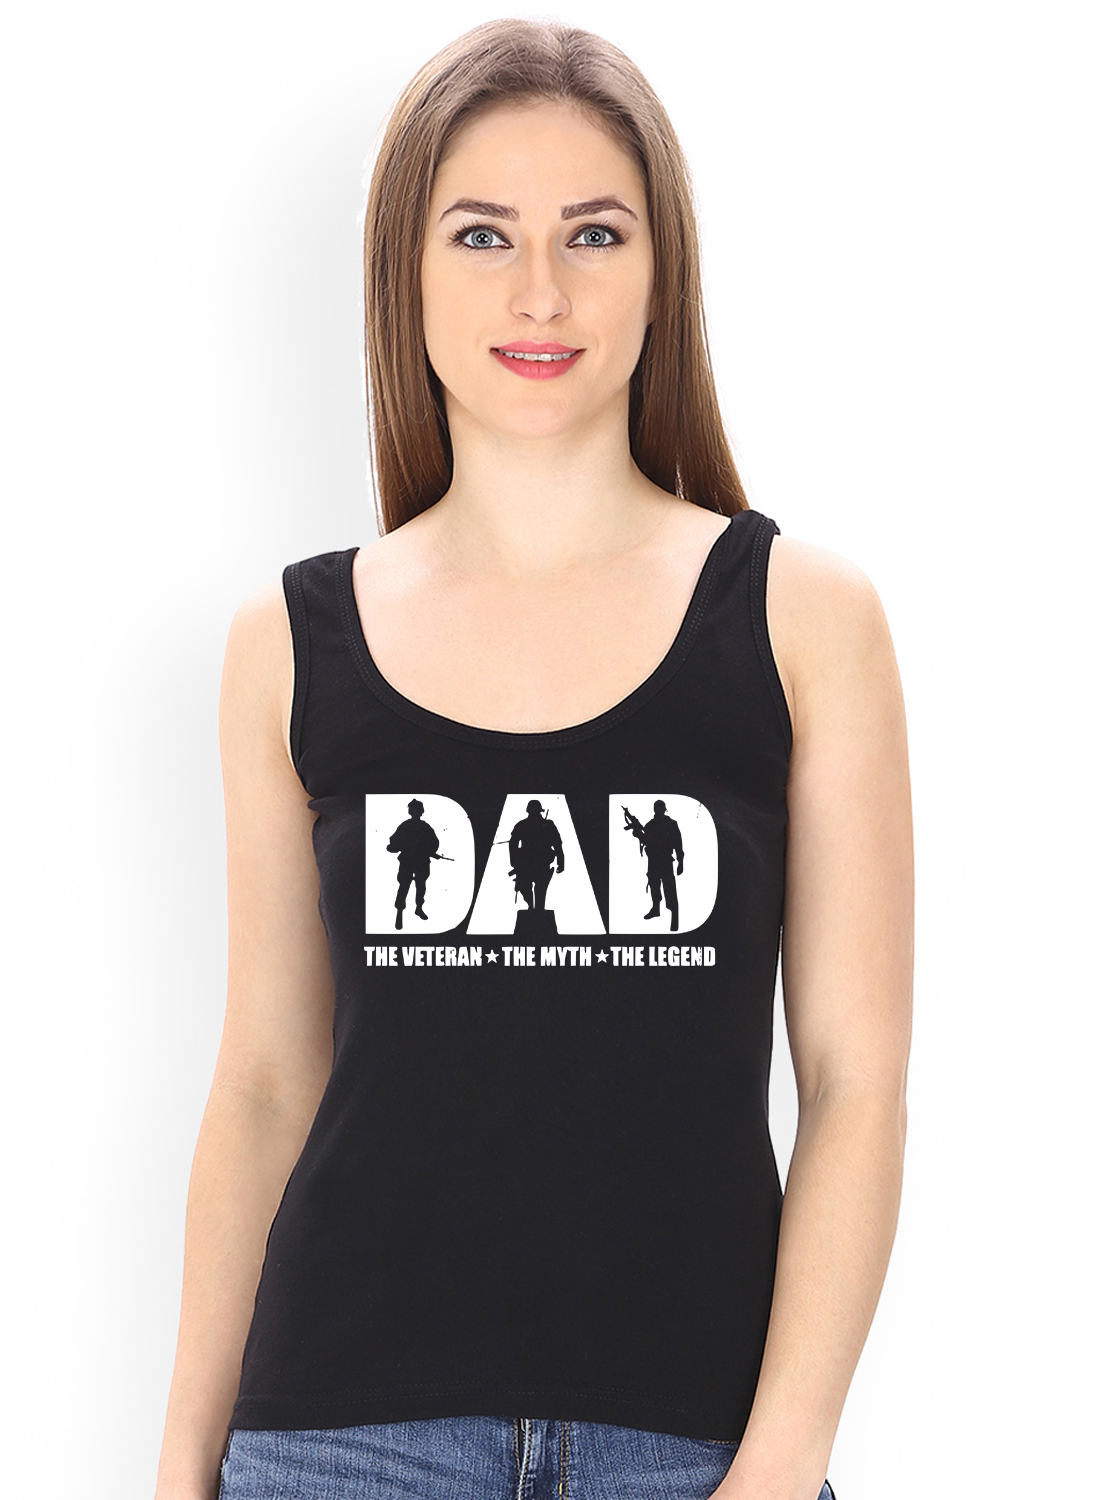 Caseria Women's Cotton Biowash Graphic Printed Tank Top - Dad Veteran Myth Legend (Black, L)